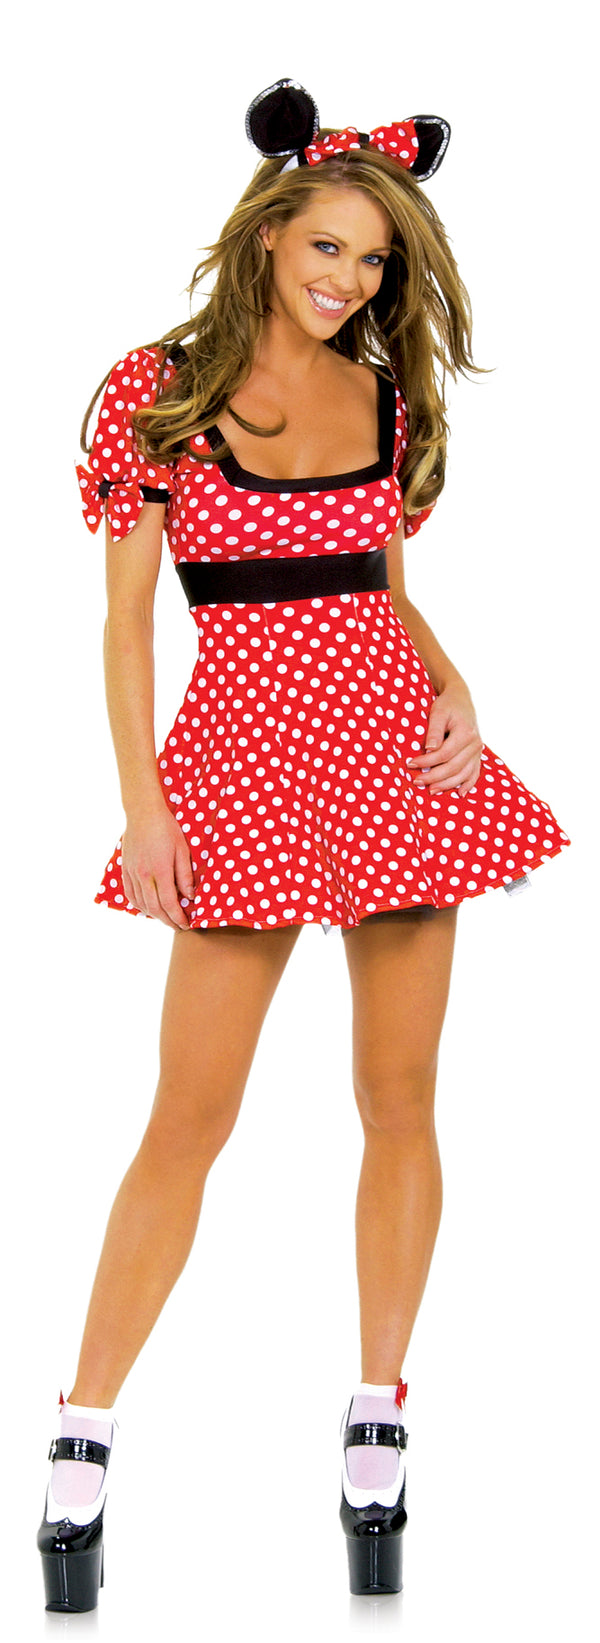 Minnie Mouse Costume Front JV554